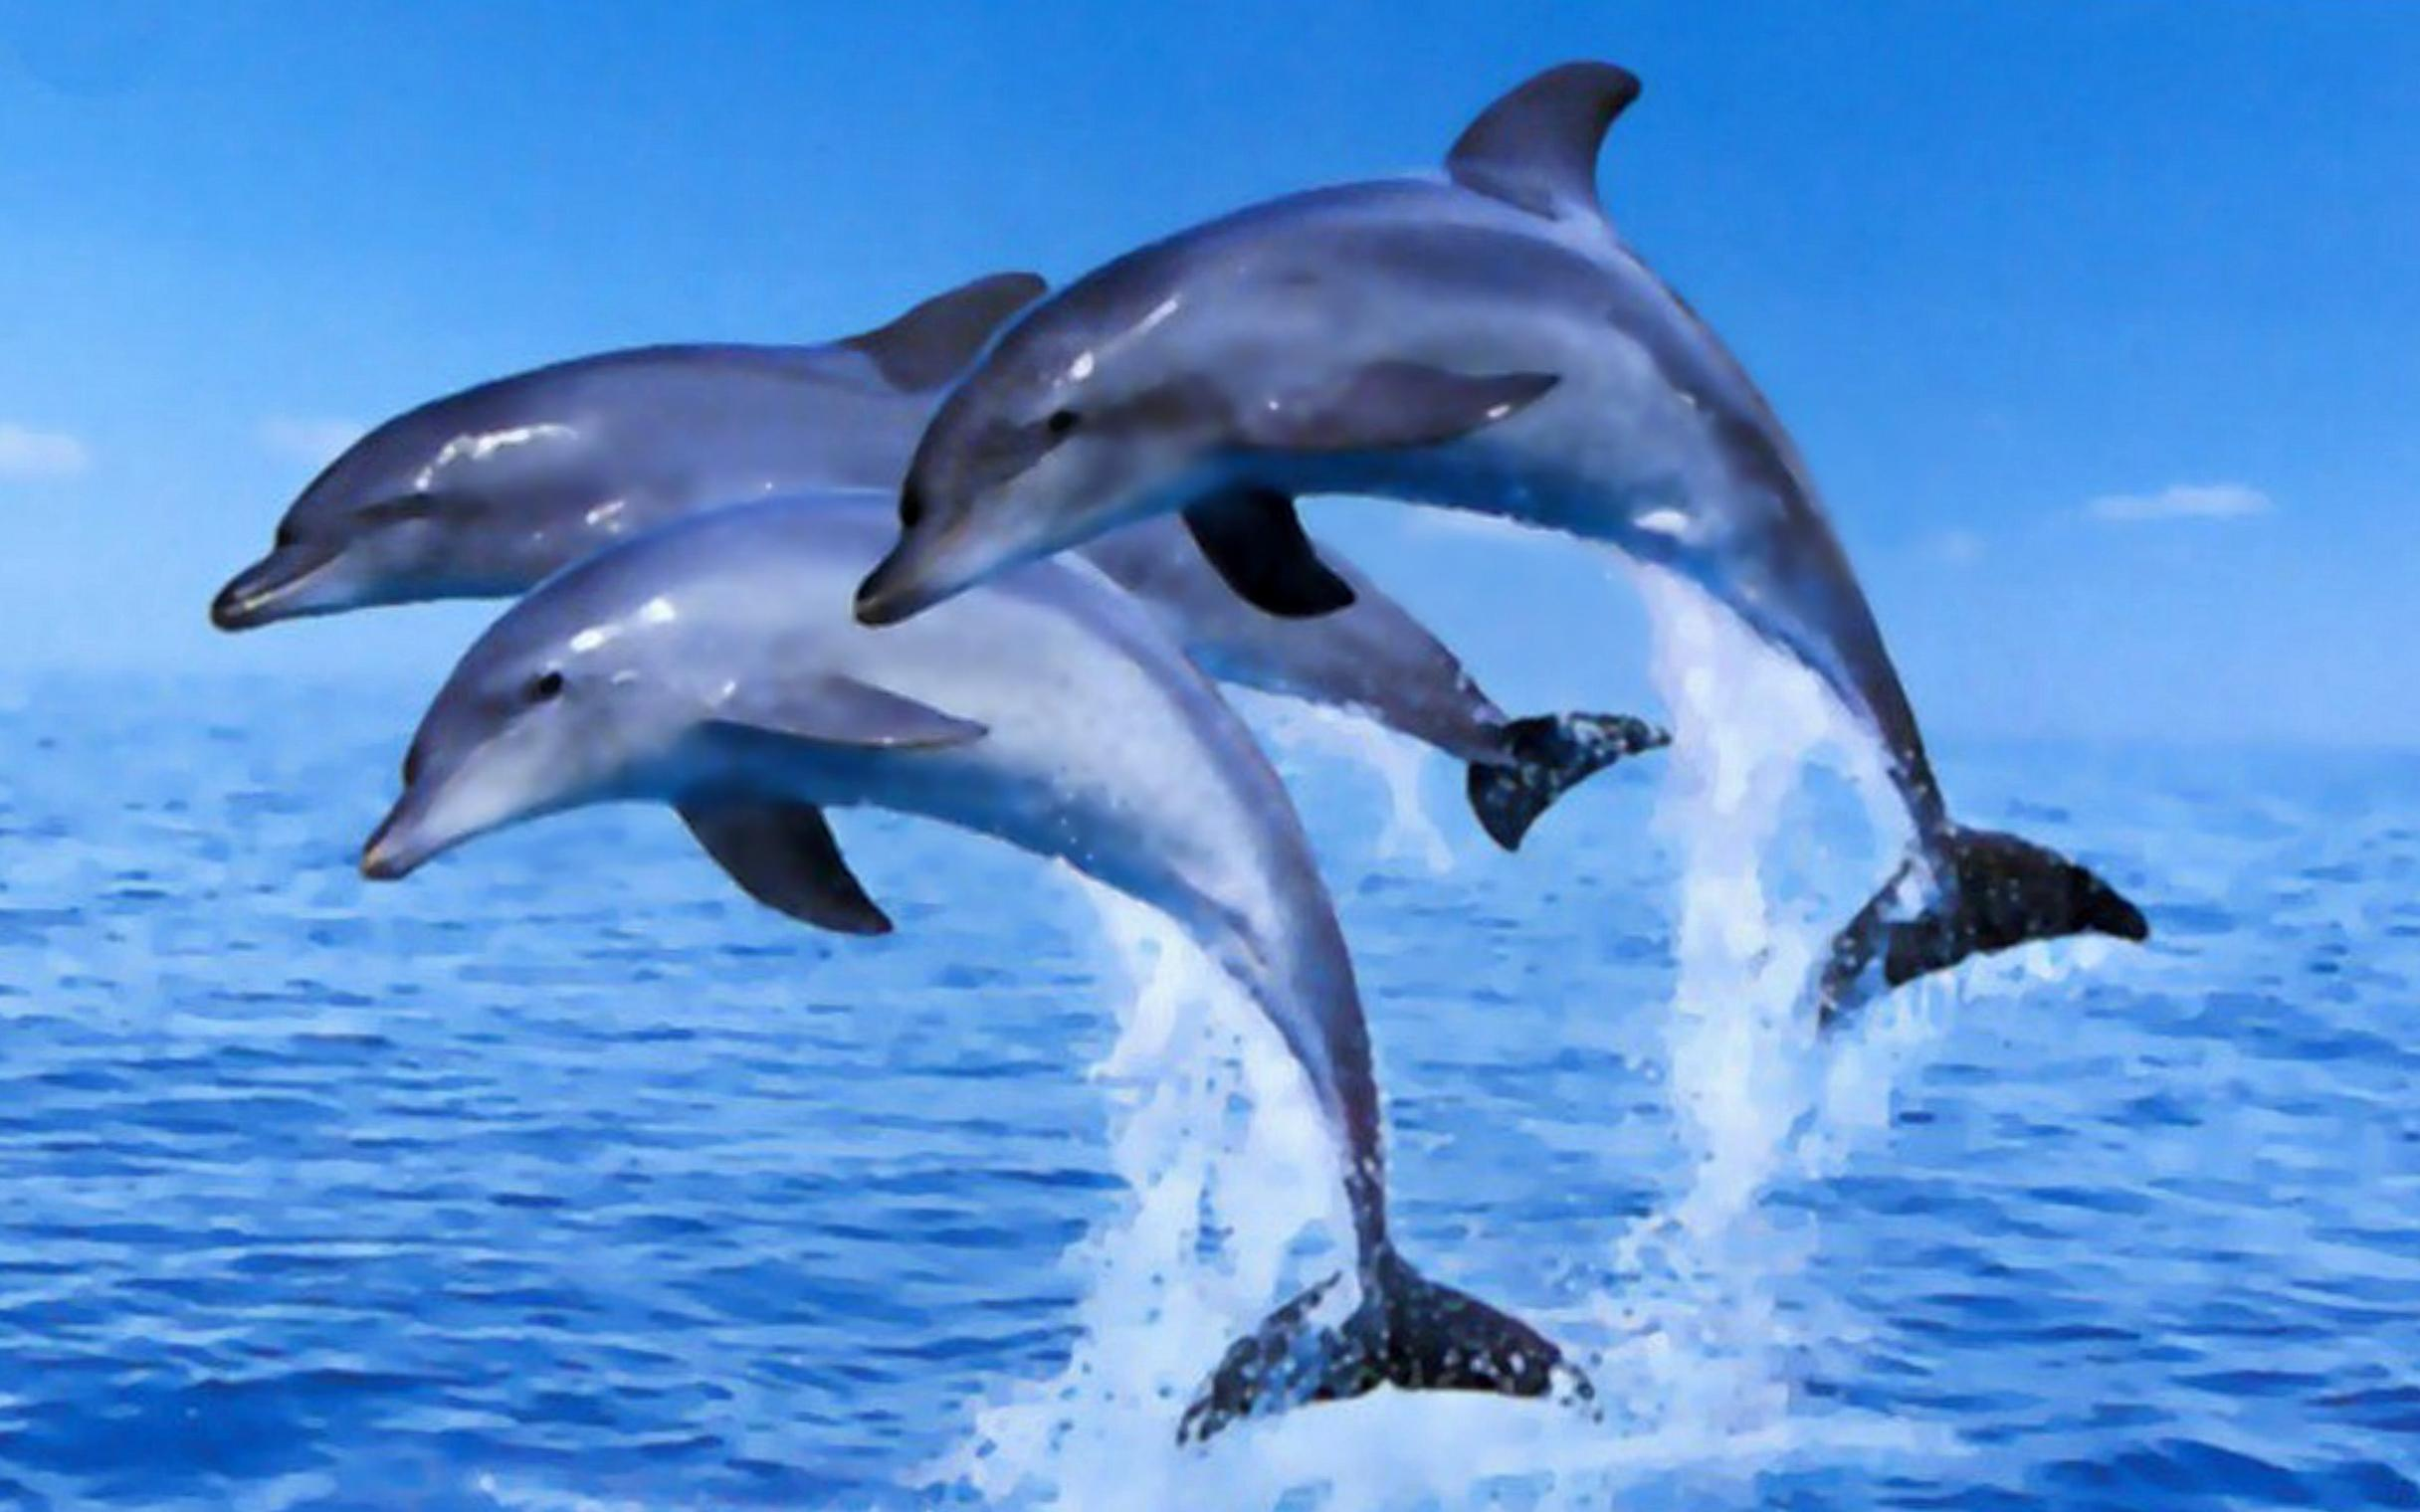 Beached dolphins - photo#40